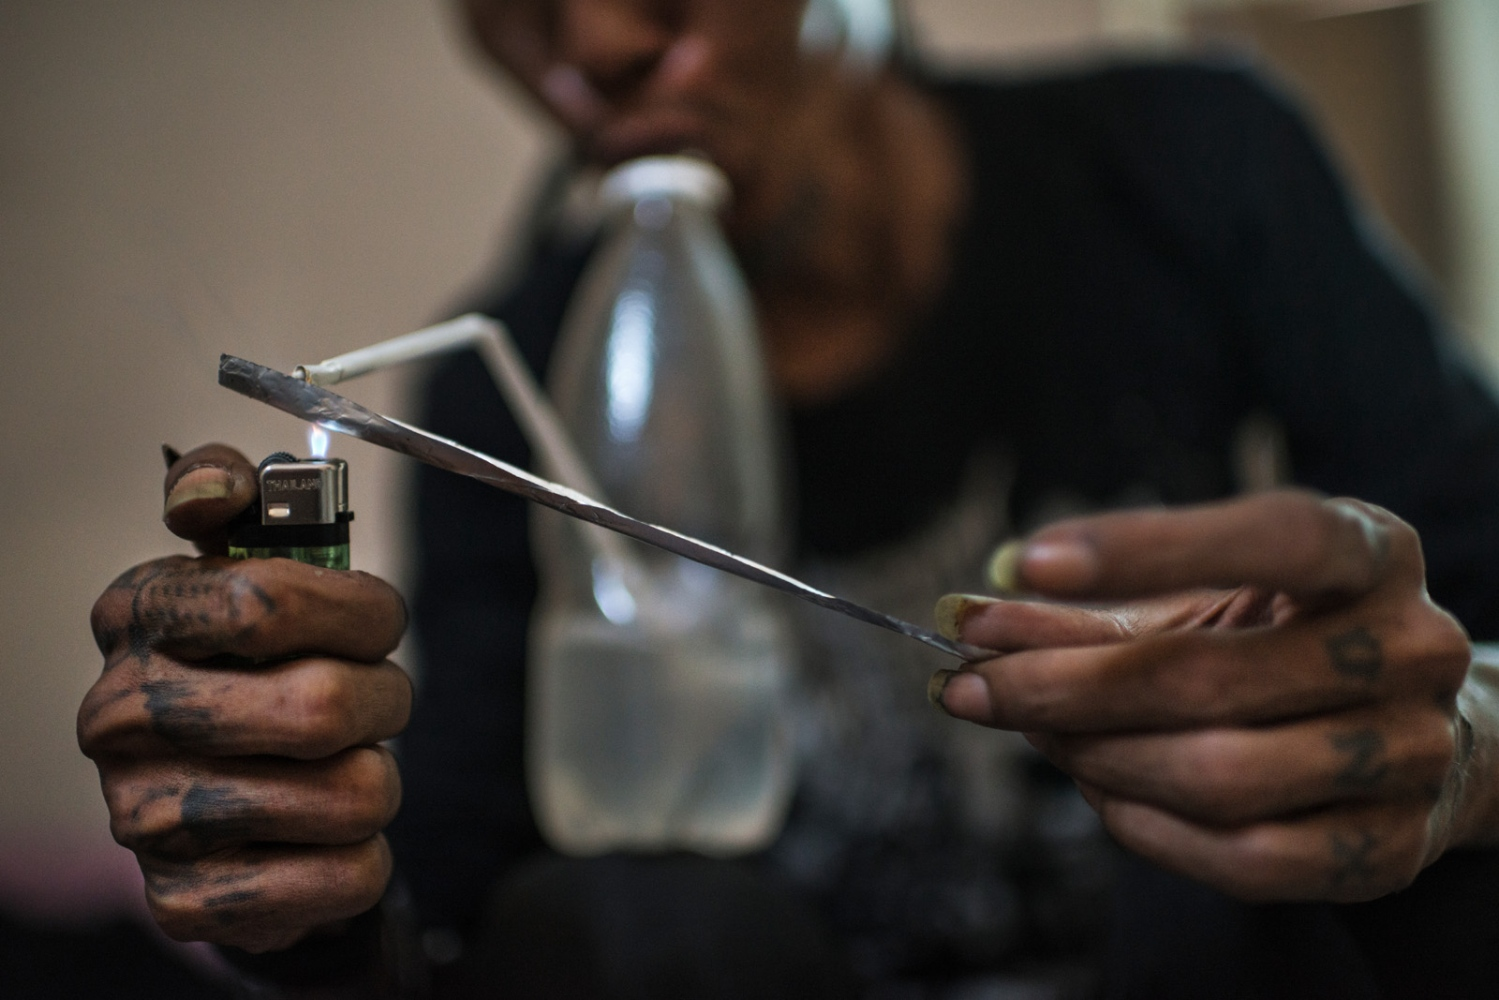 A man addicted to both heroin and methamphetamine smoking his afternoon fix of meth in his home in Yangon, Myanmar.